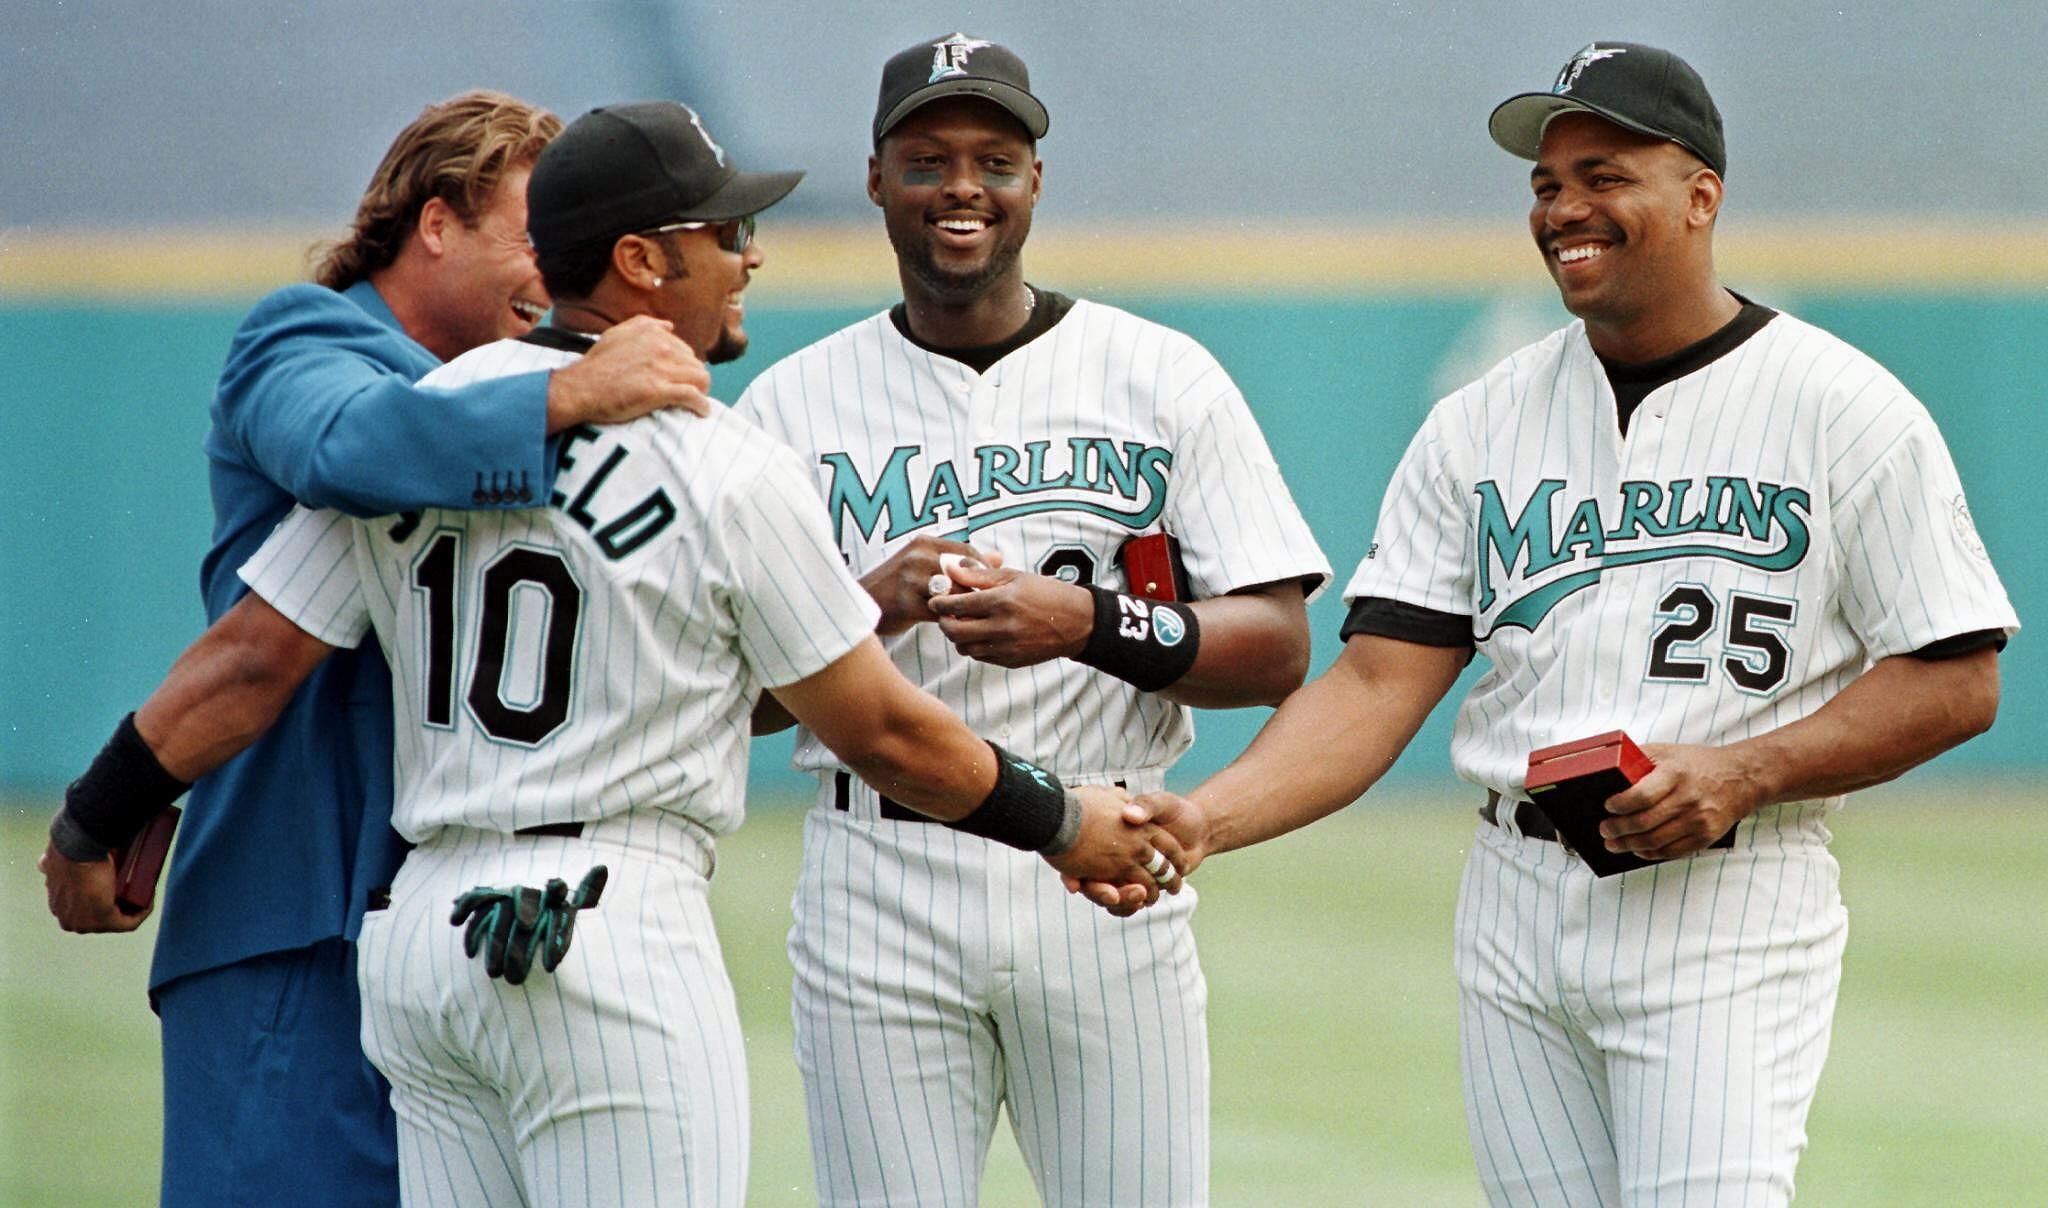 51640242-florida-marlins-1997-world-series-players-from-le.jpg